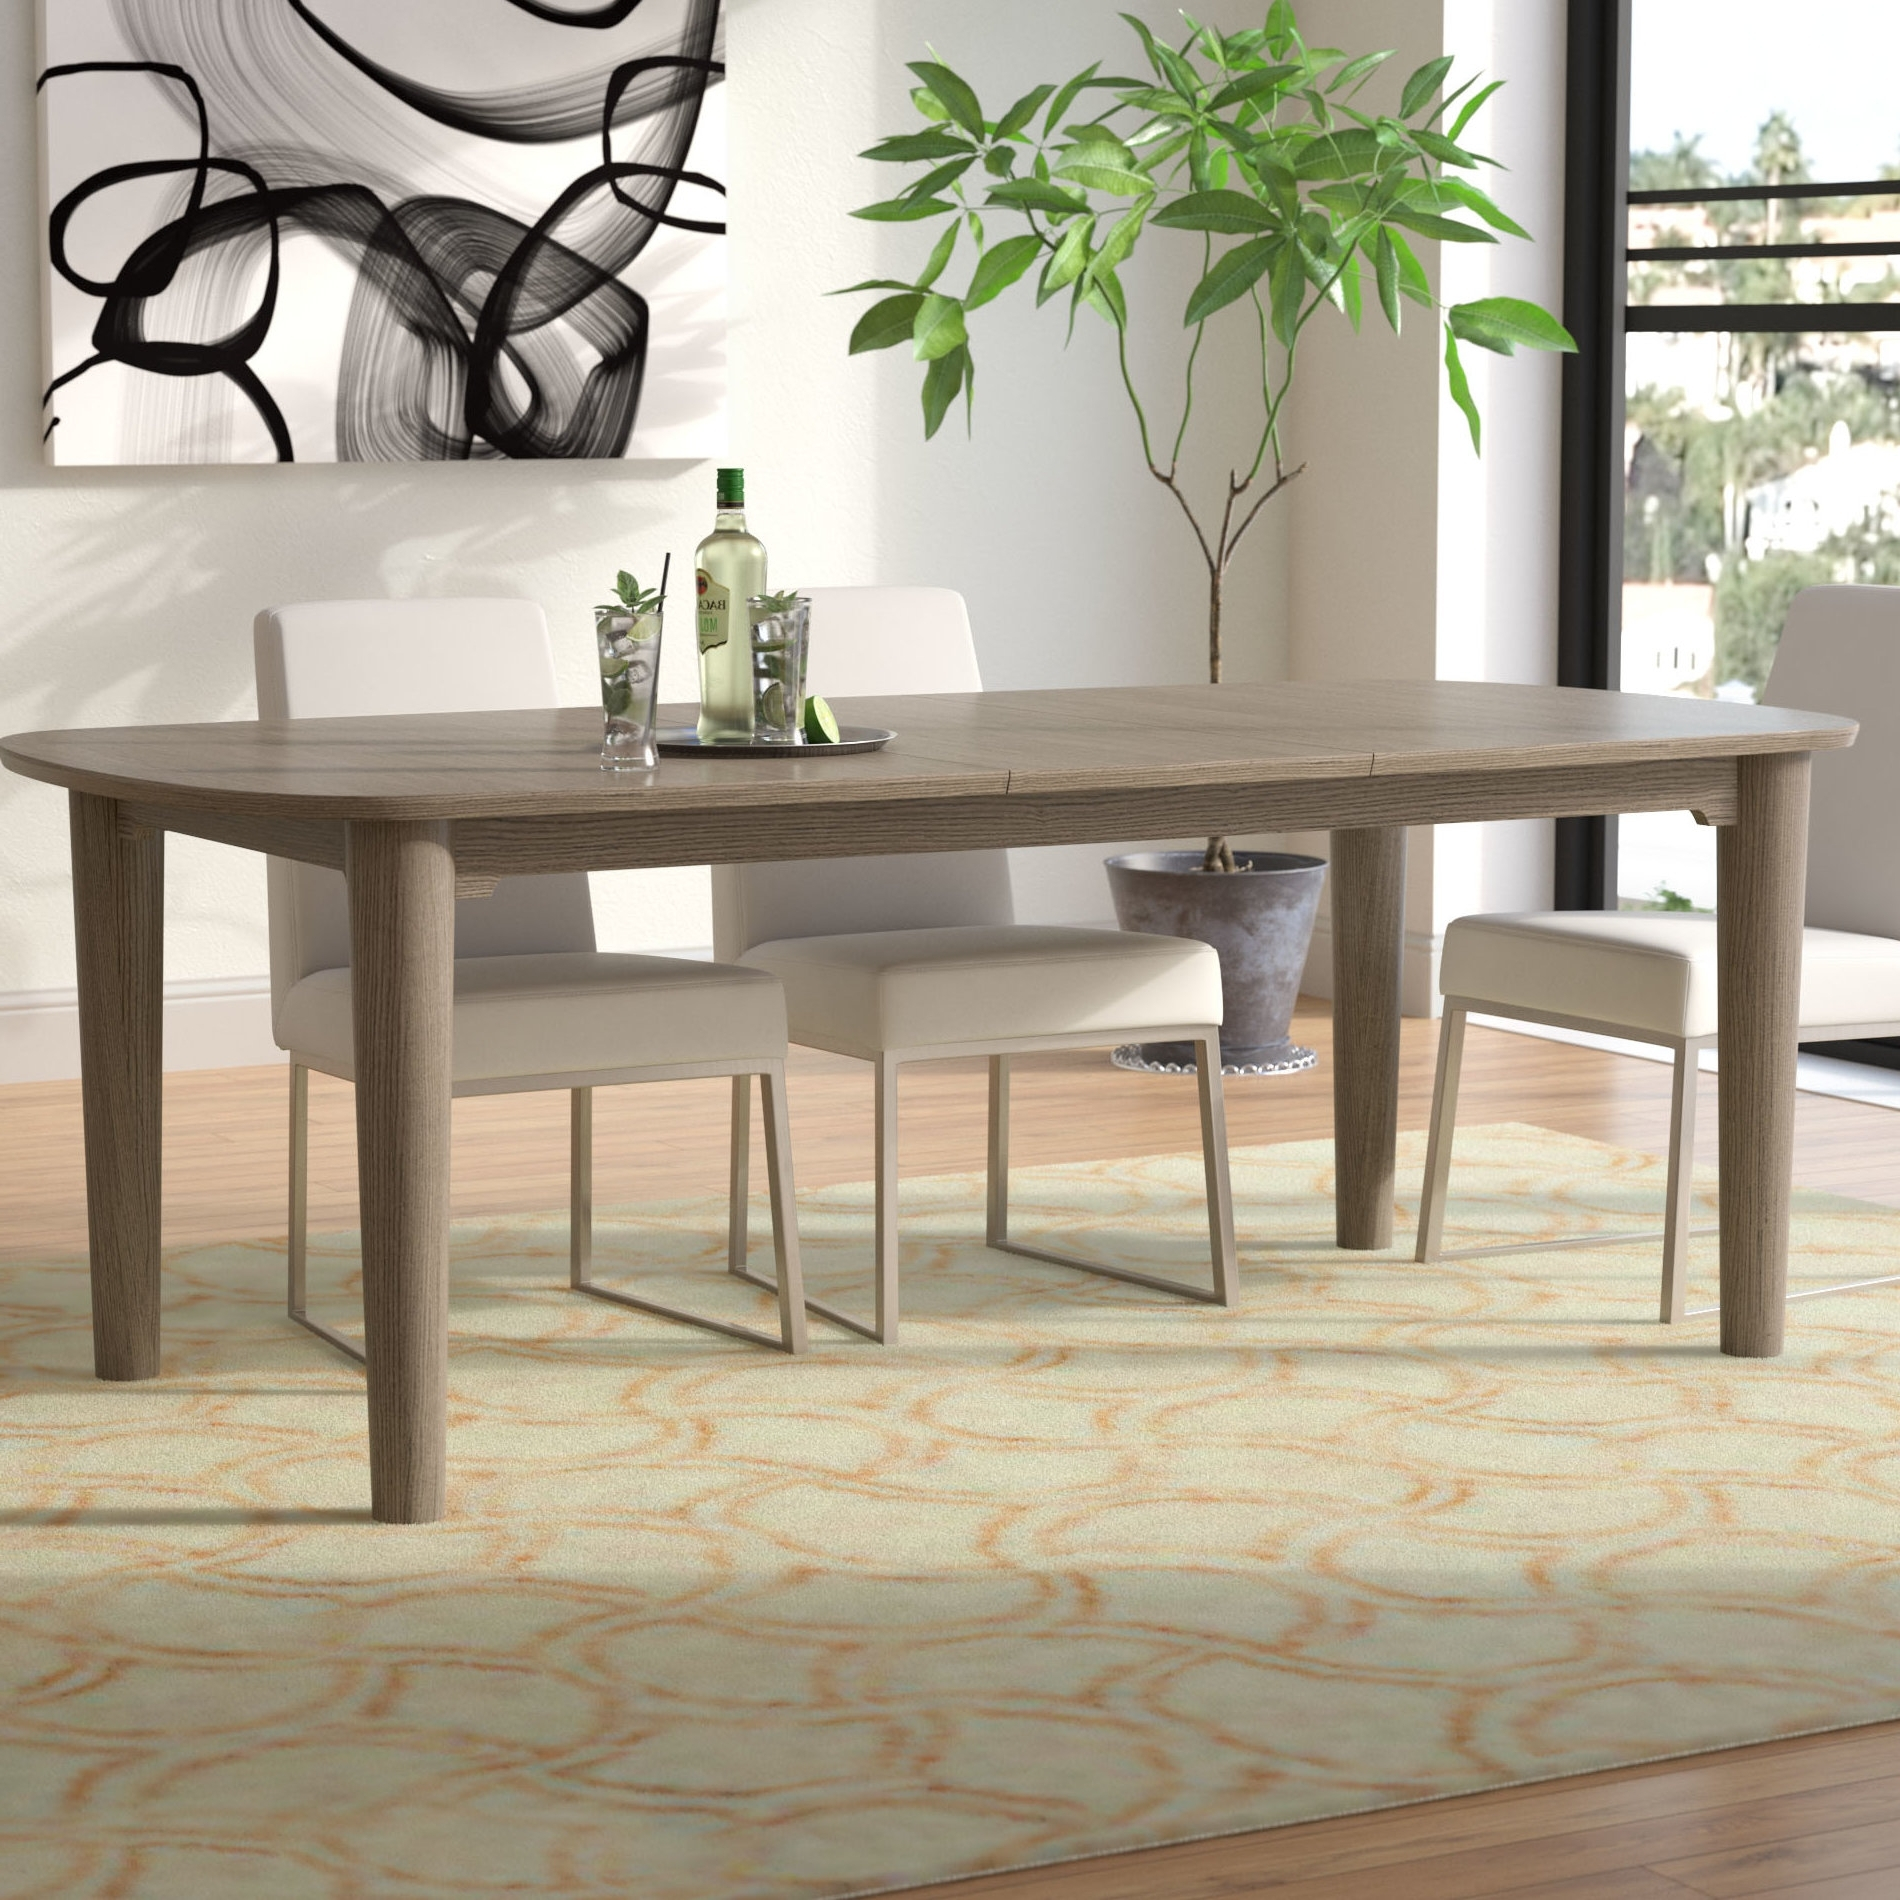 Enrique Extendable Dining Table Pertaining To Most Current Extendable Dining Sets (View 13 of 25)